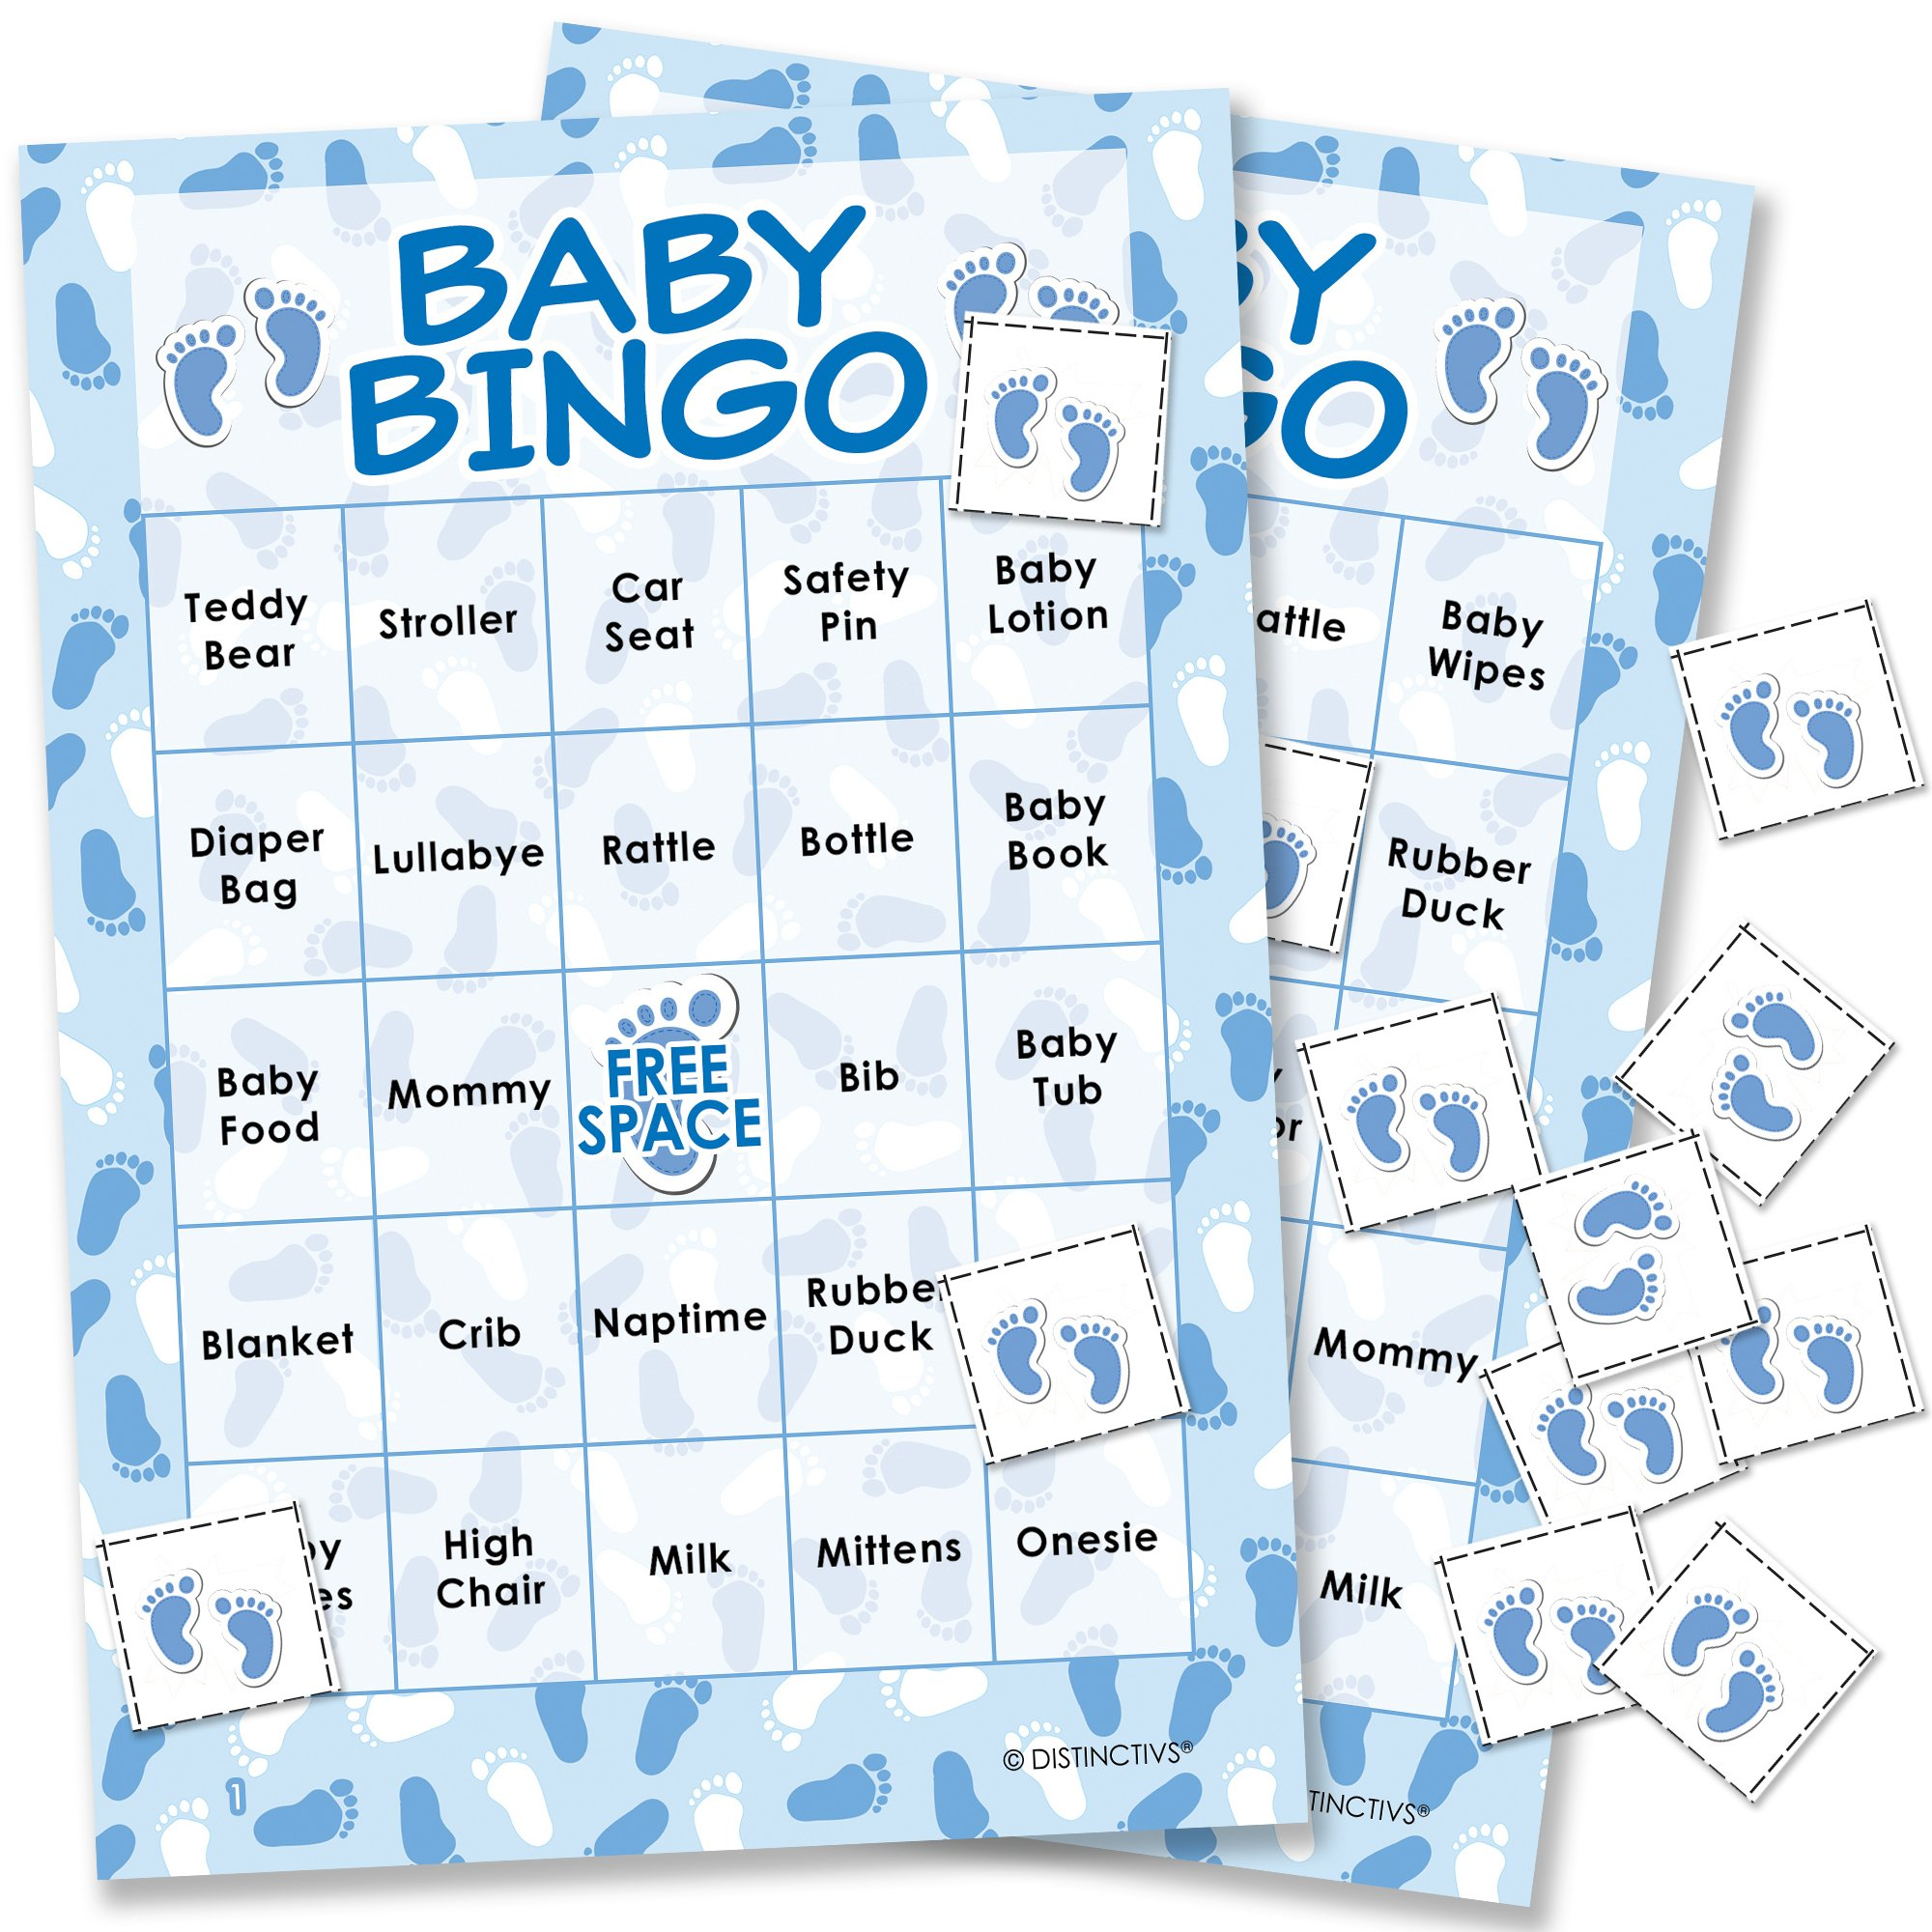 It's a Boy Baby Shower Bingo Game - 24 Guests